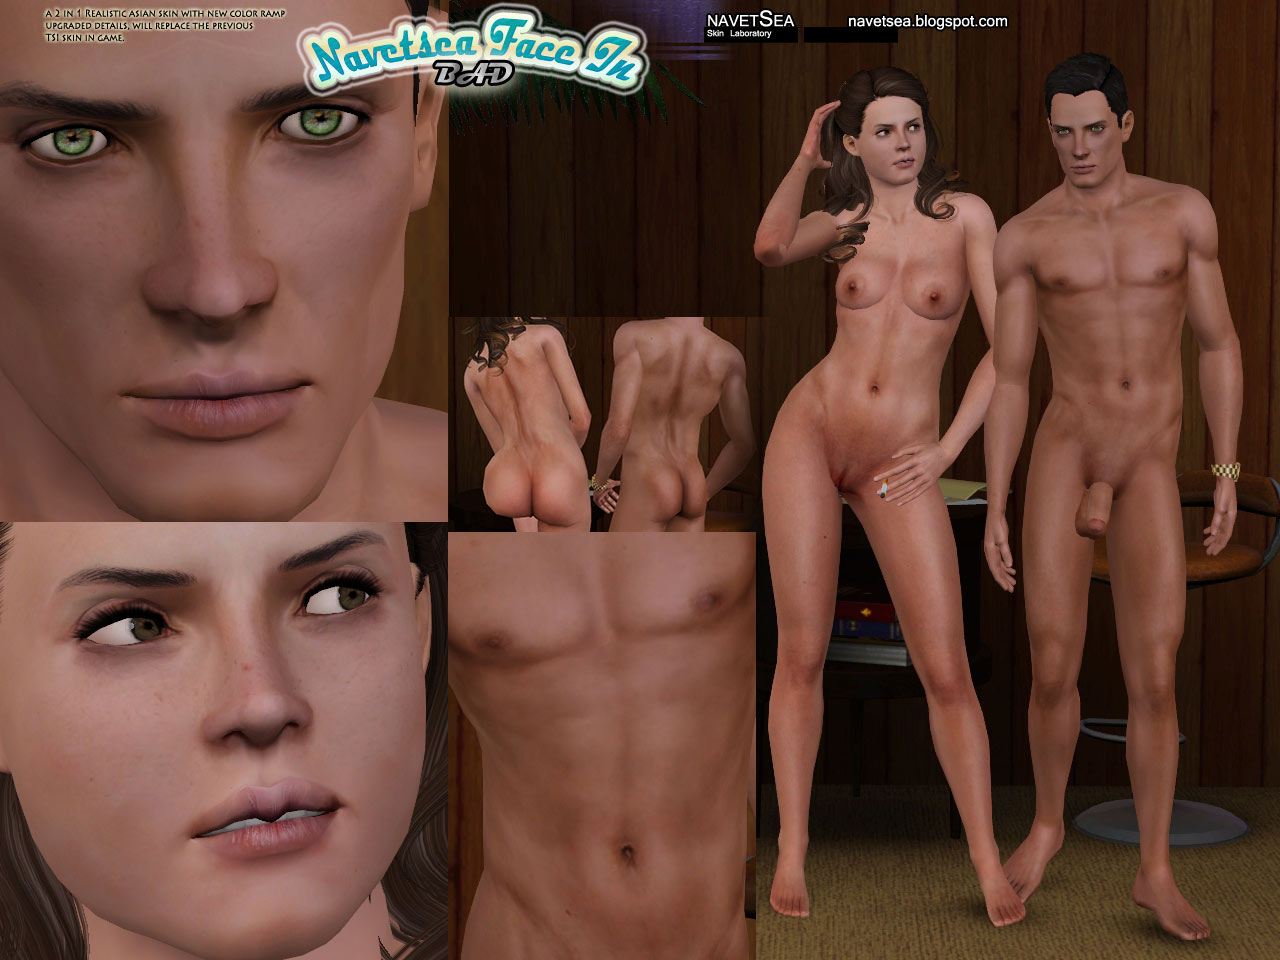 Sims 3 super nude mod nude photo